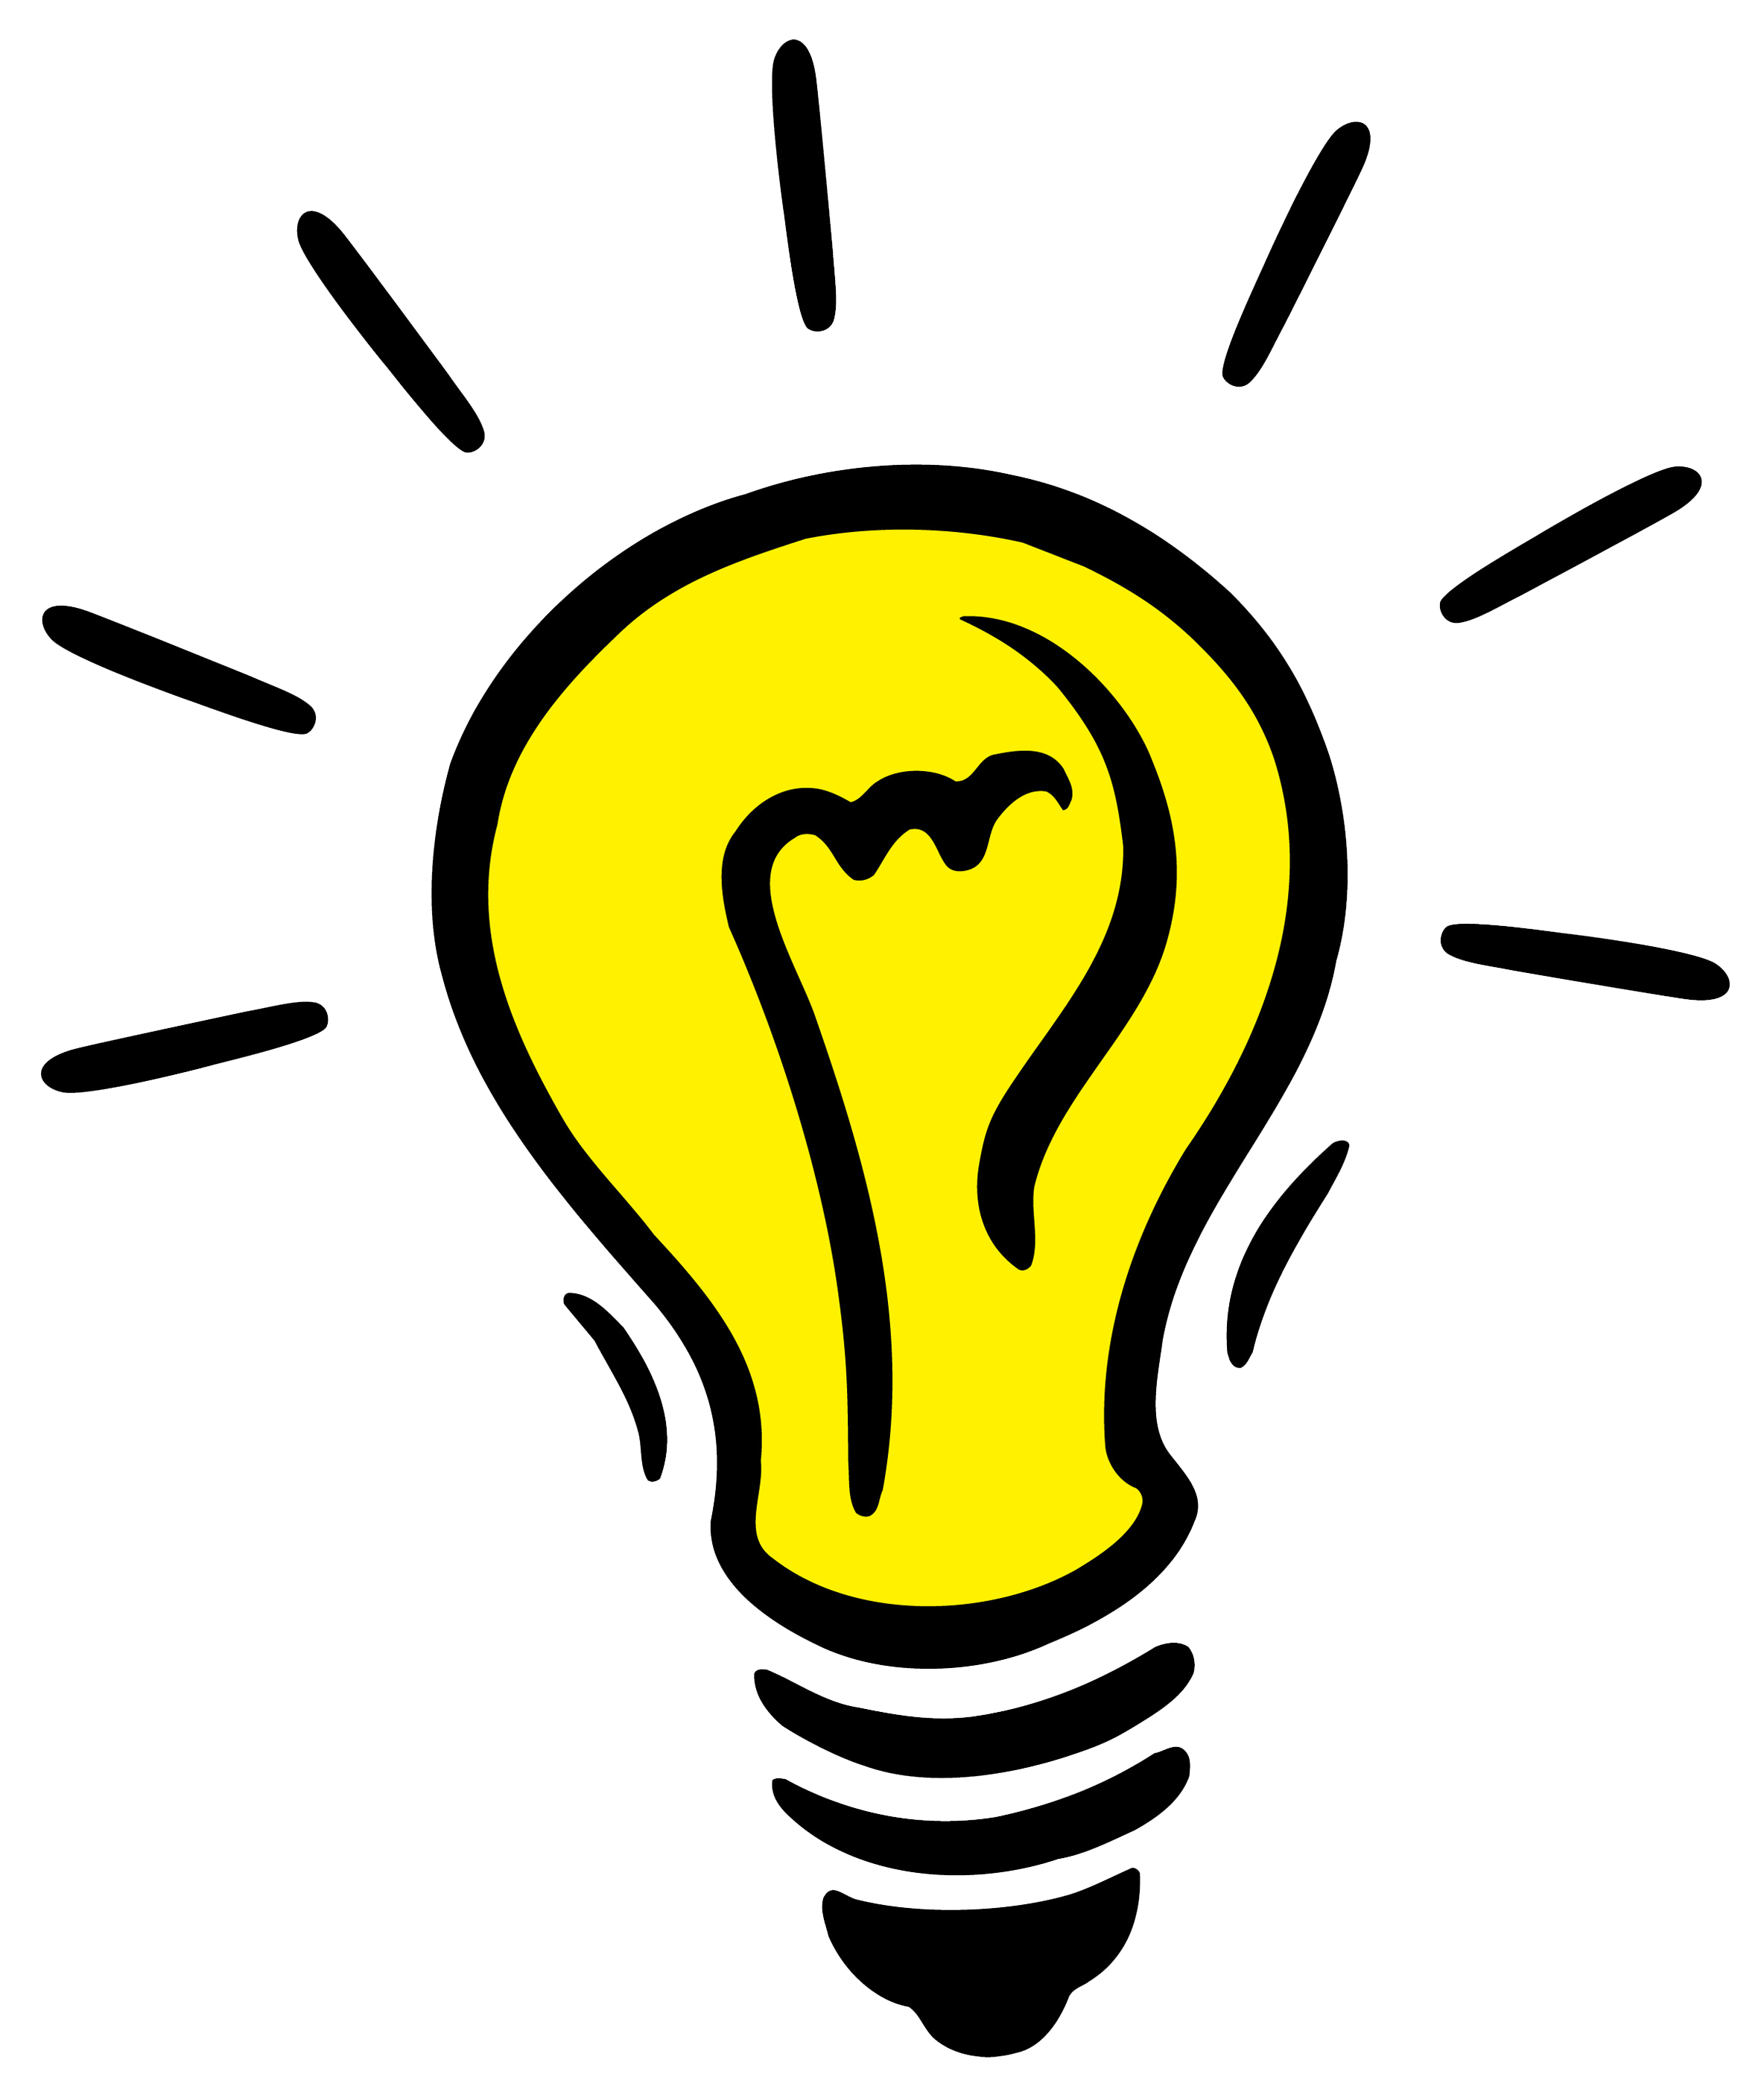 Idea lightbulb png. Bulb transparent mart